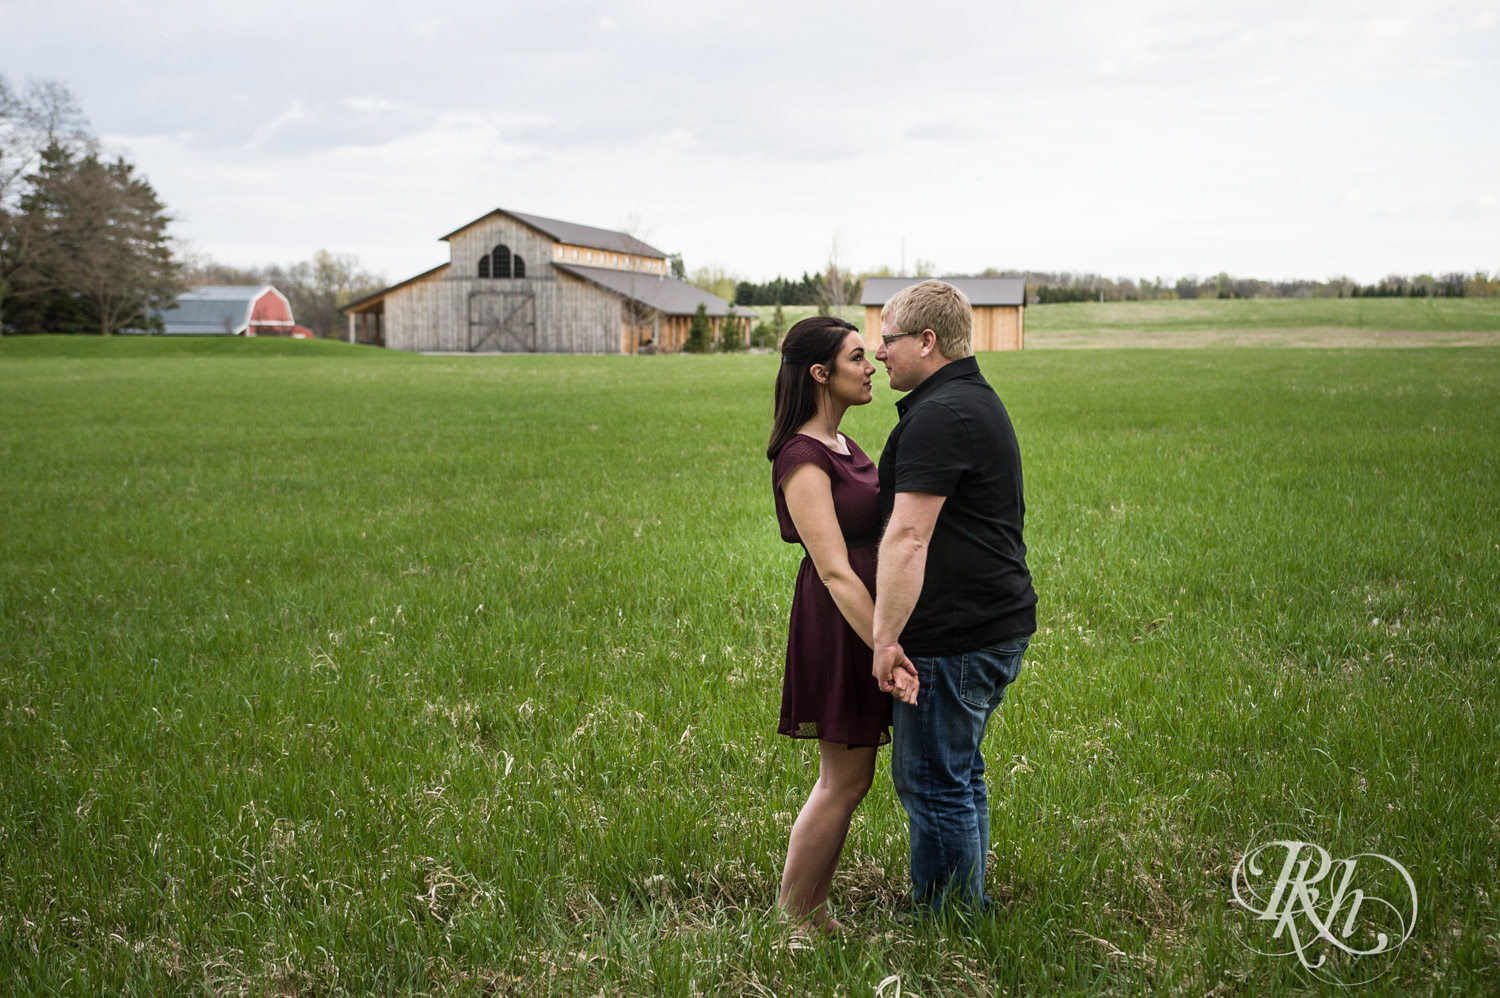 Chelsey & Erik - Minnesota Engagement Photography - Creekside Farm and Events - Rush City - RKH Images  (14 of 18).jpg